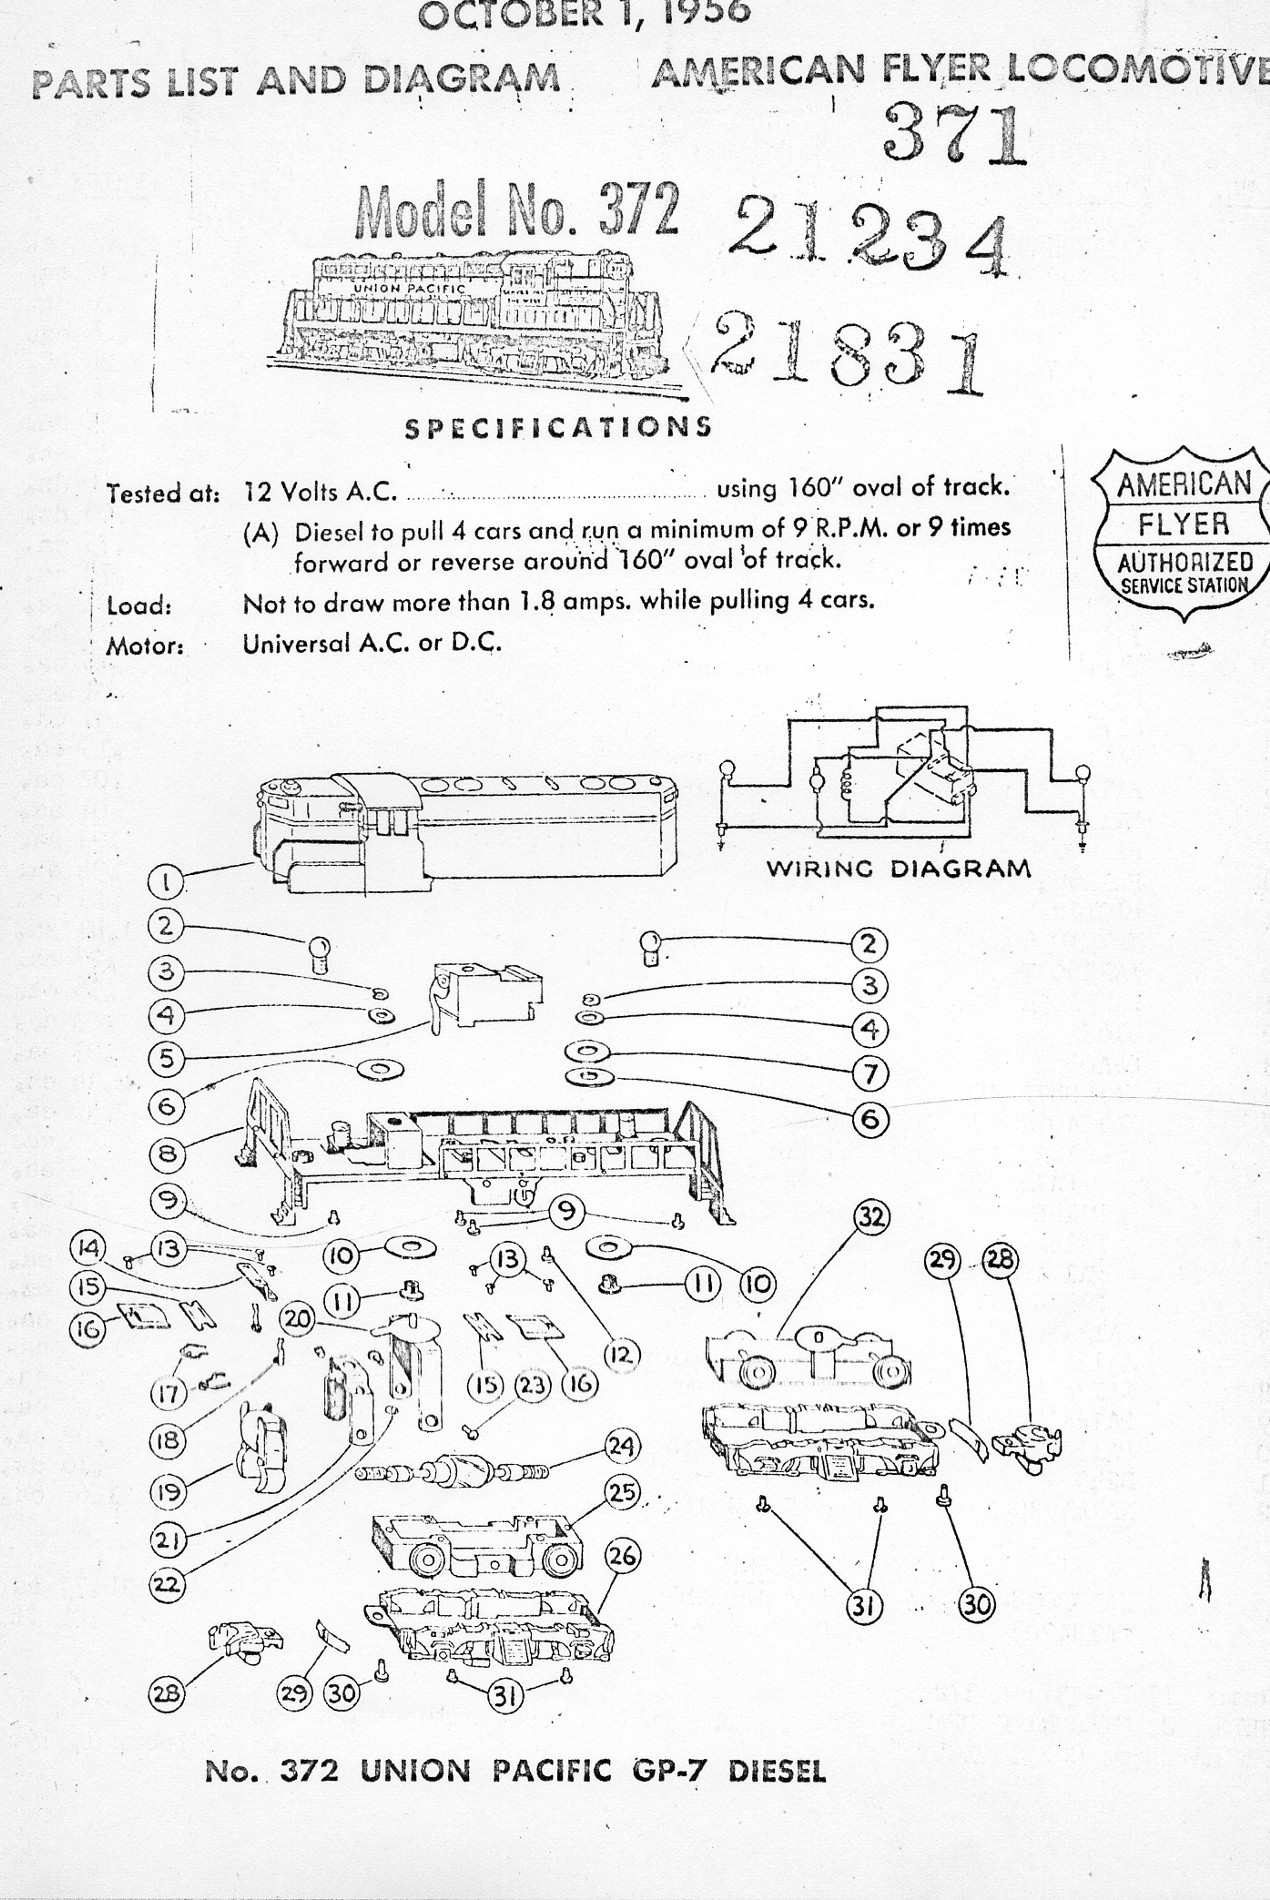 hight resolution of american flyer locomotive 372 union pacific gp 7 diesel parts list